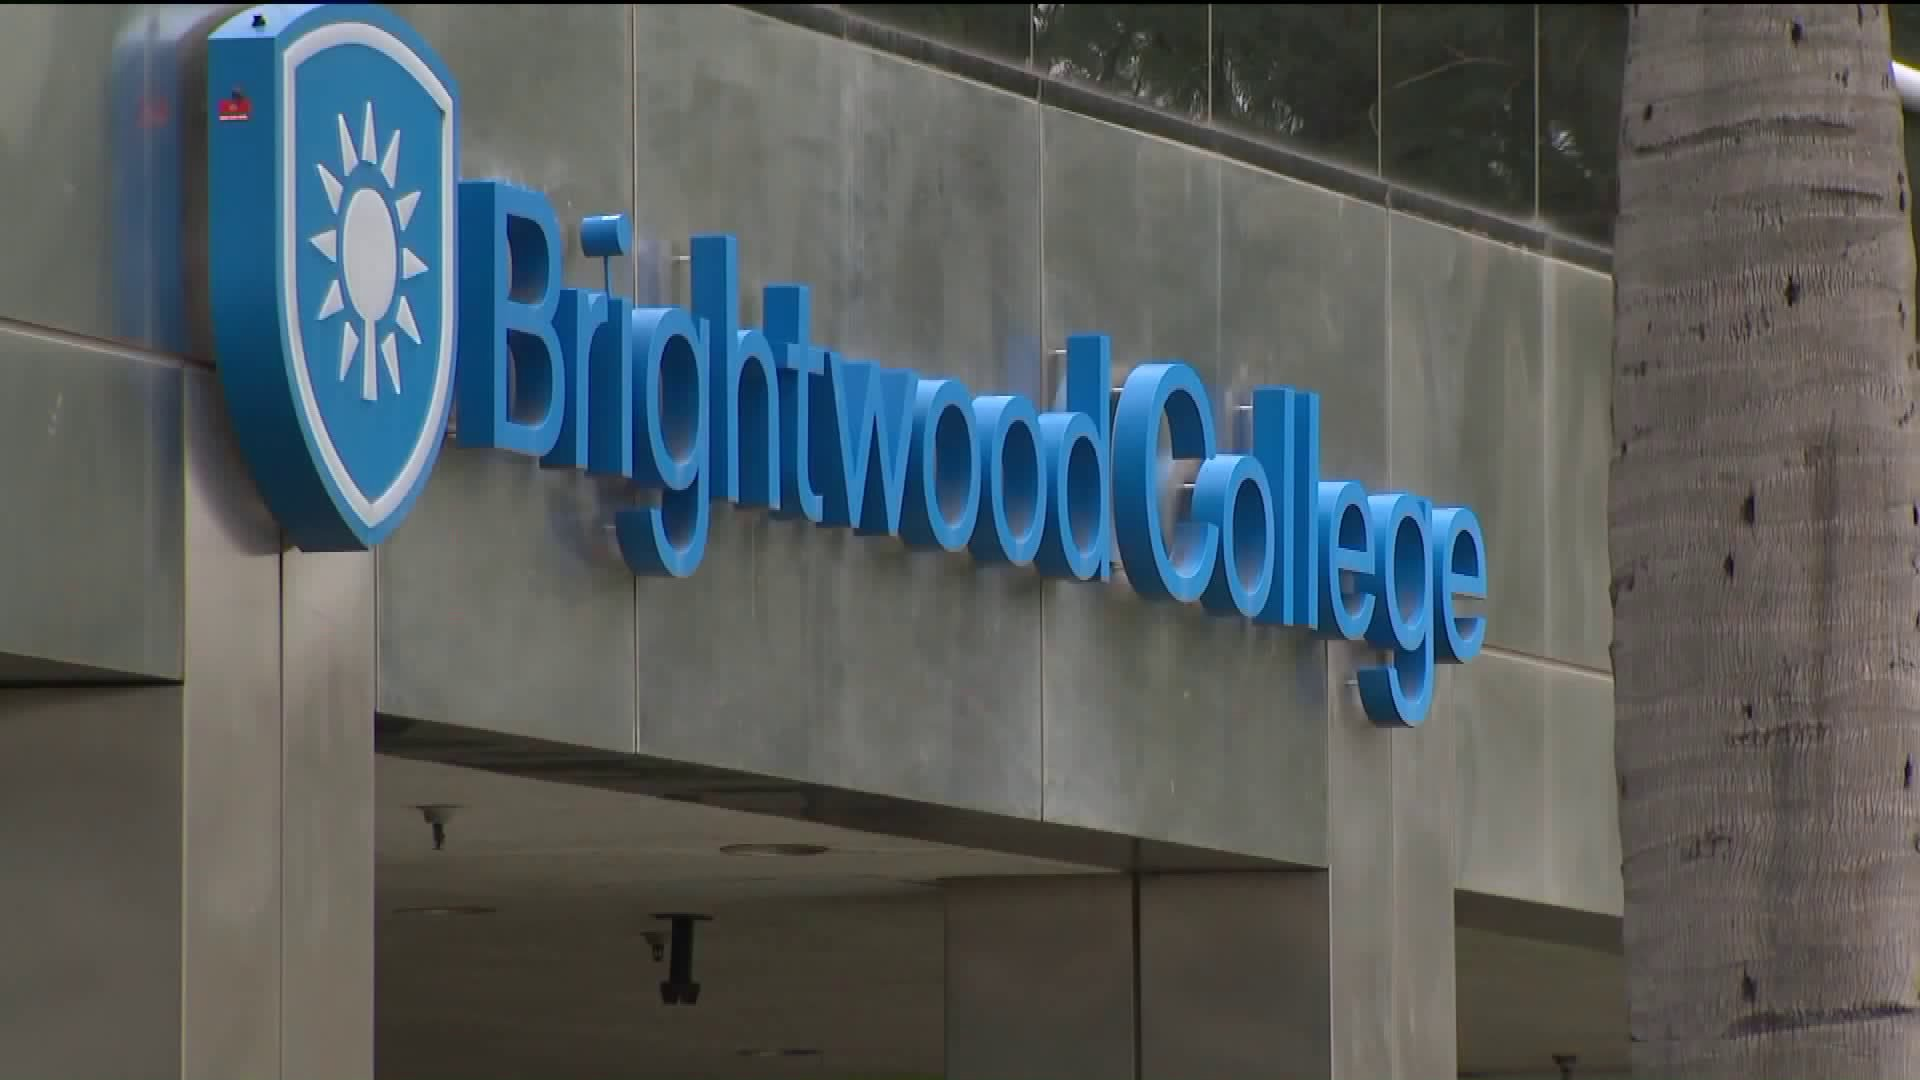 Brightwood College in Van Nuys is seen on Wednesday, Dec. 6, 2018, the day the school abruptly shut down. (Credit: KTLA)